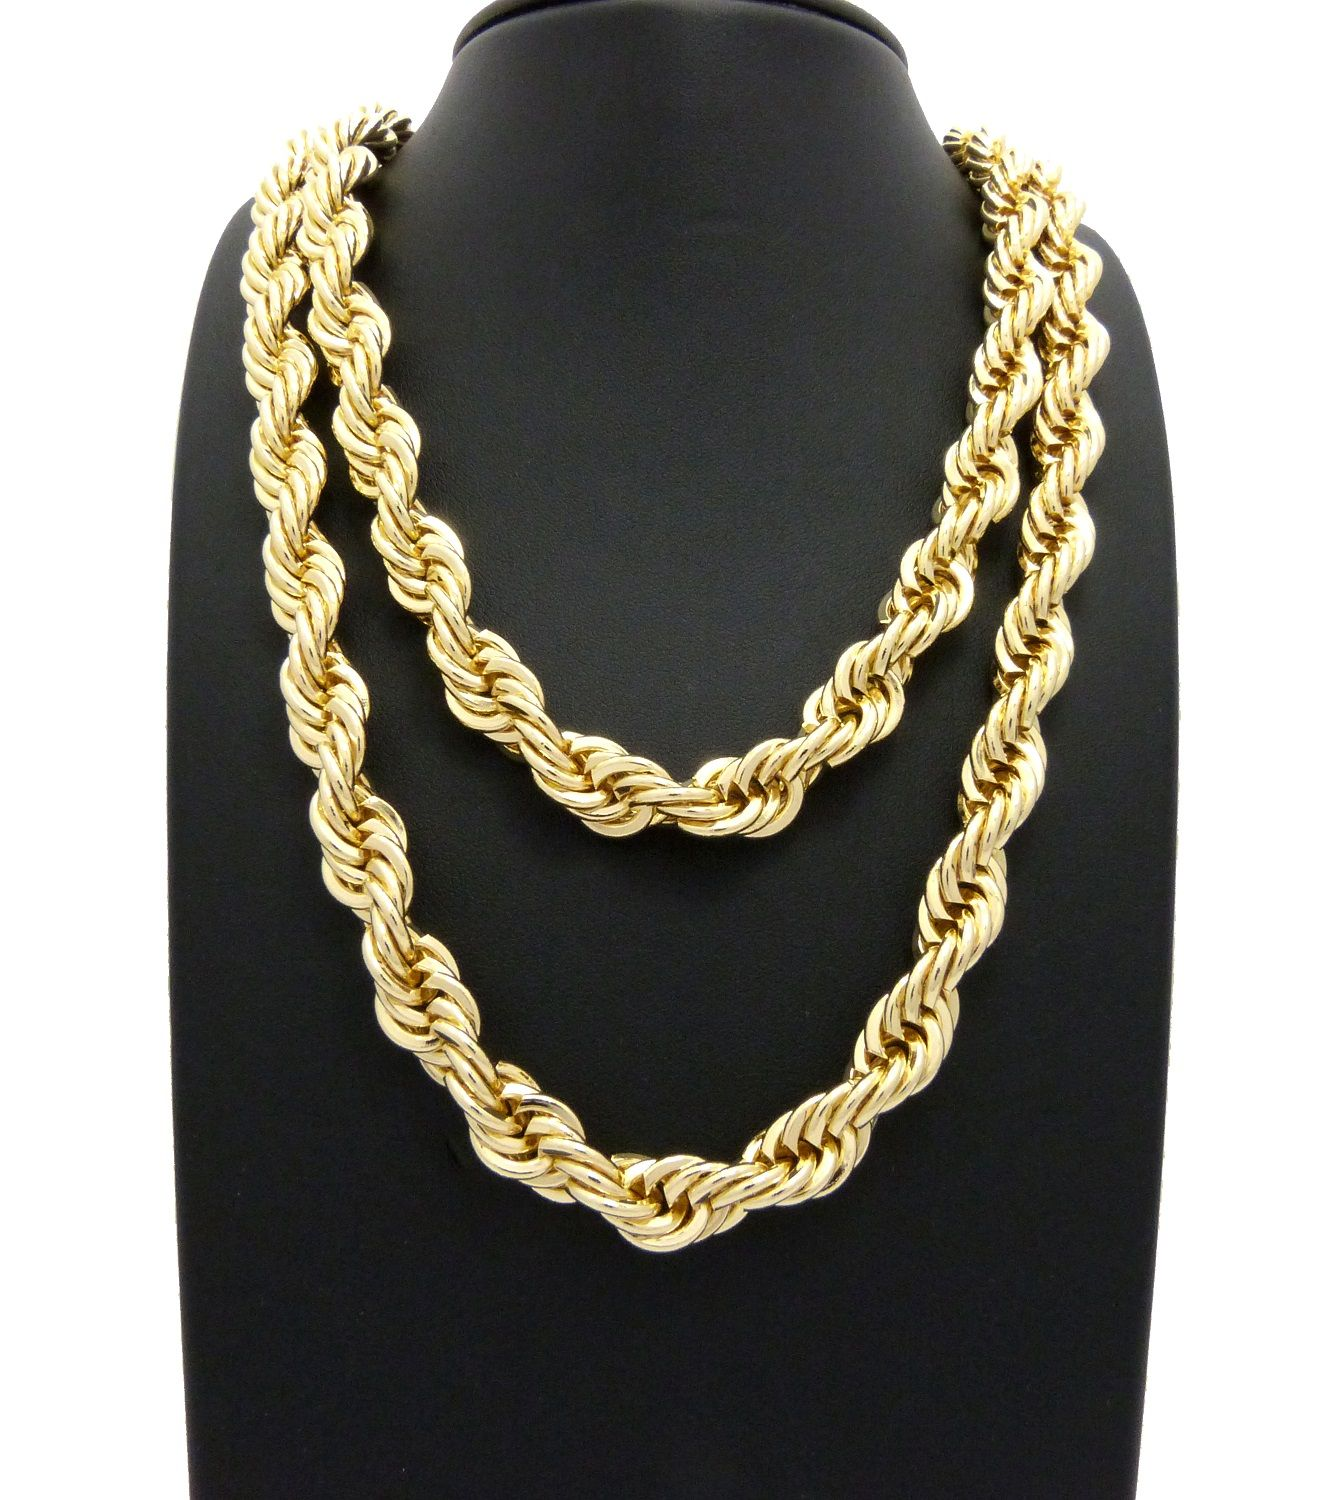 10mm 22 26 Rope Chain Hip Hop Necklace Set Silver Necklace Statement Jewelry Fashion Necklace